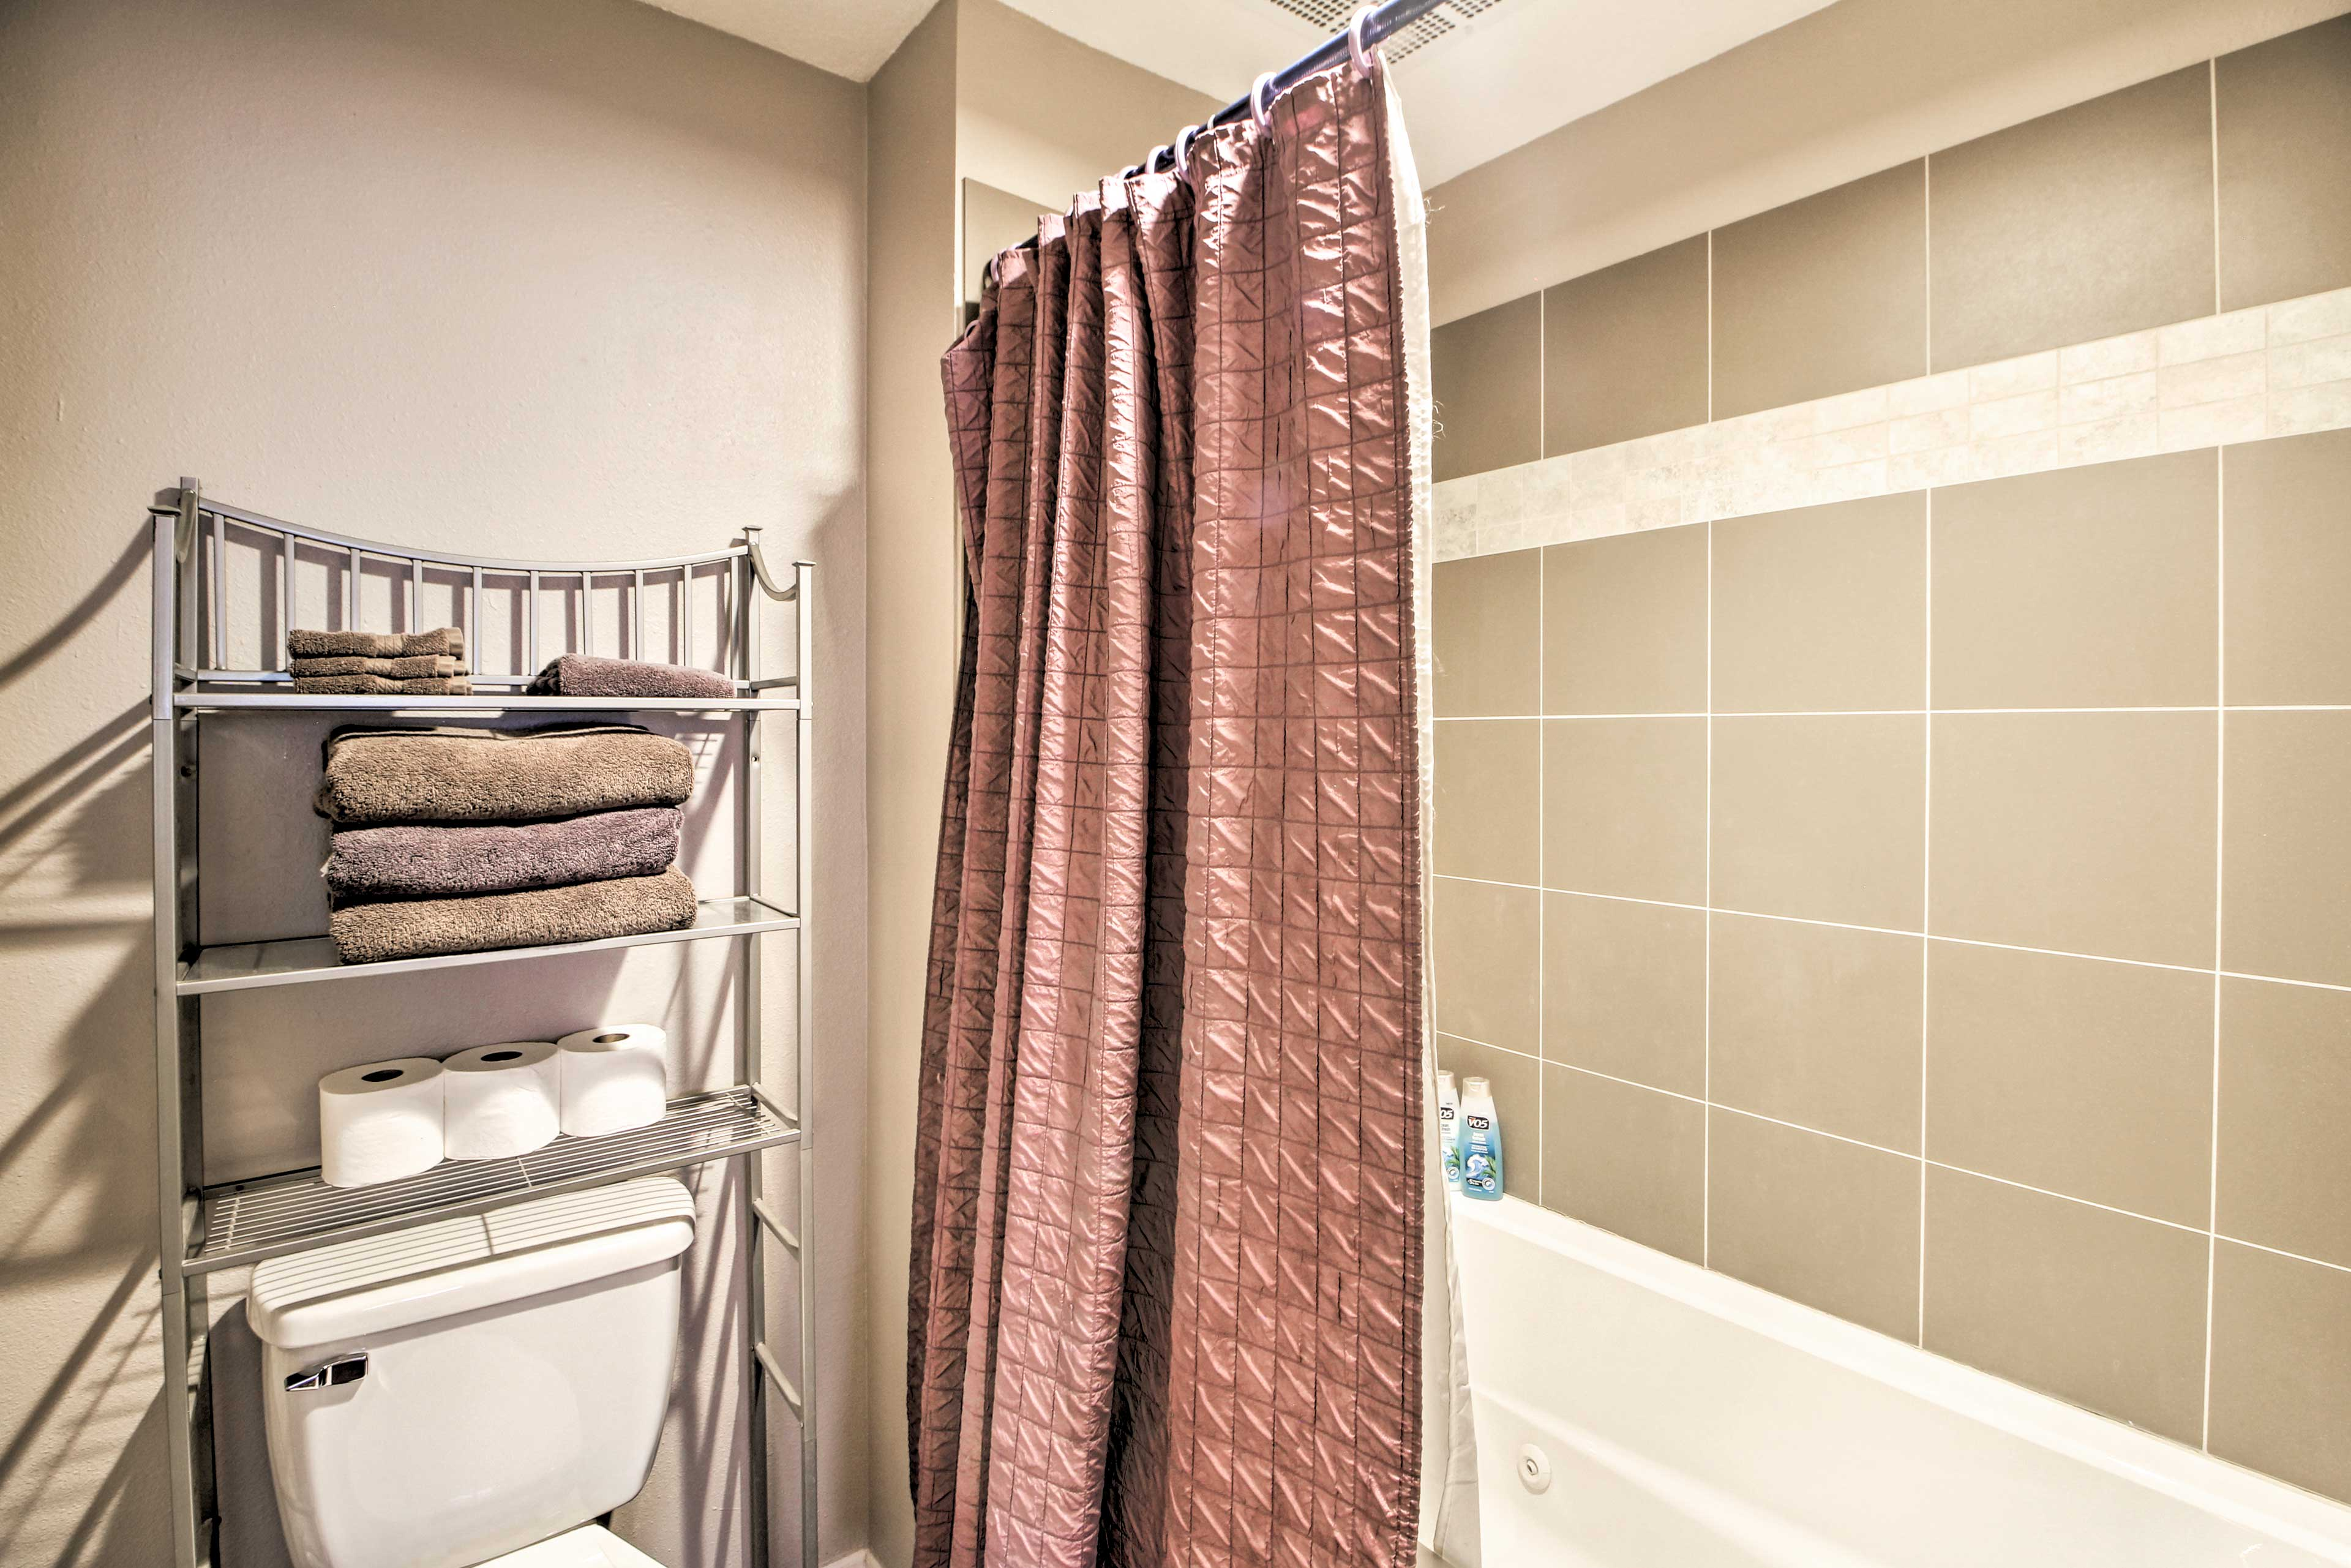 Full Bathroom | Towels Provided | Complimentary Toiletries